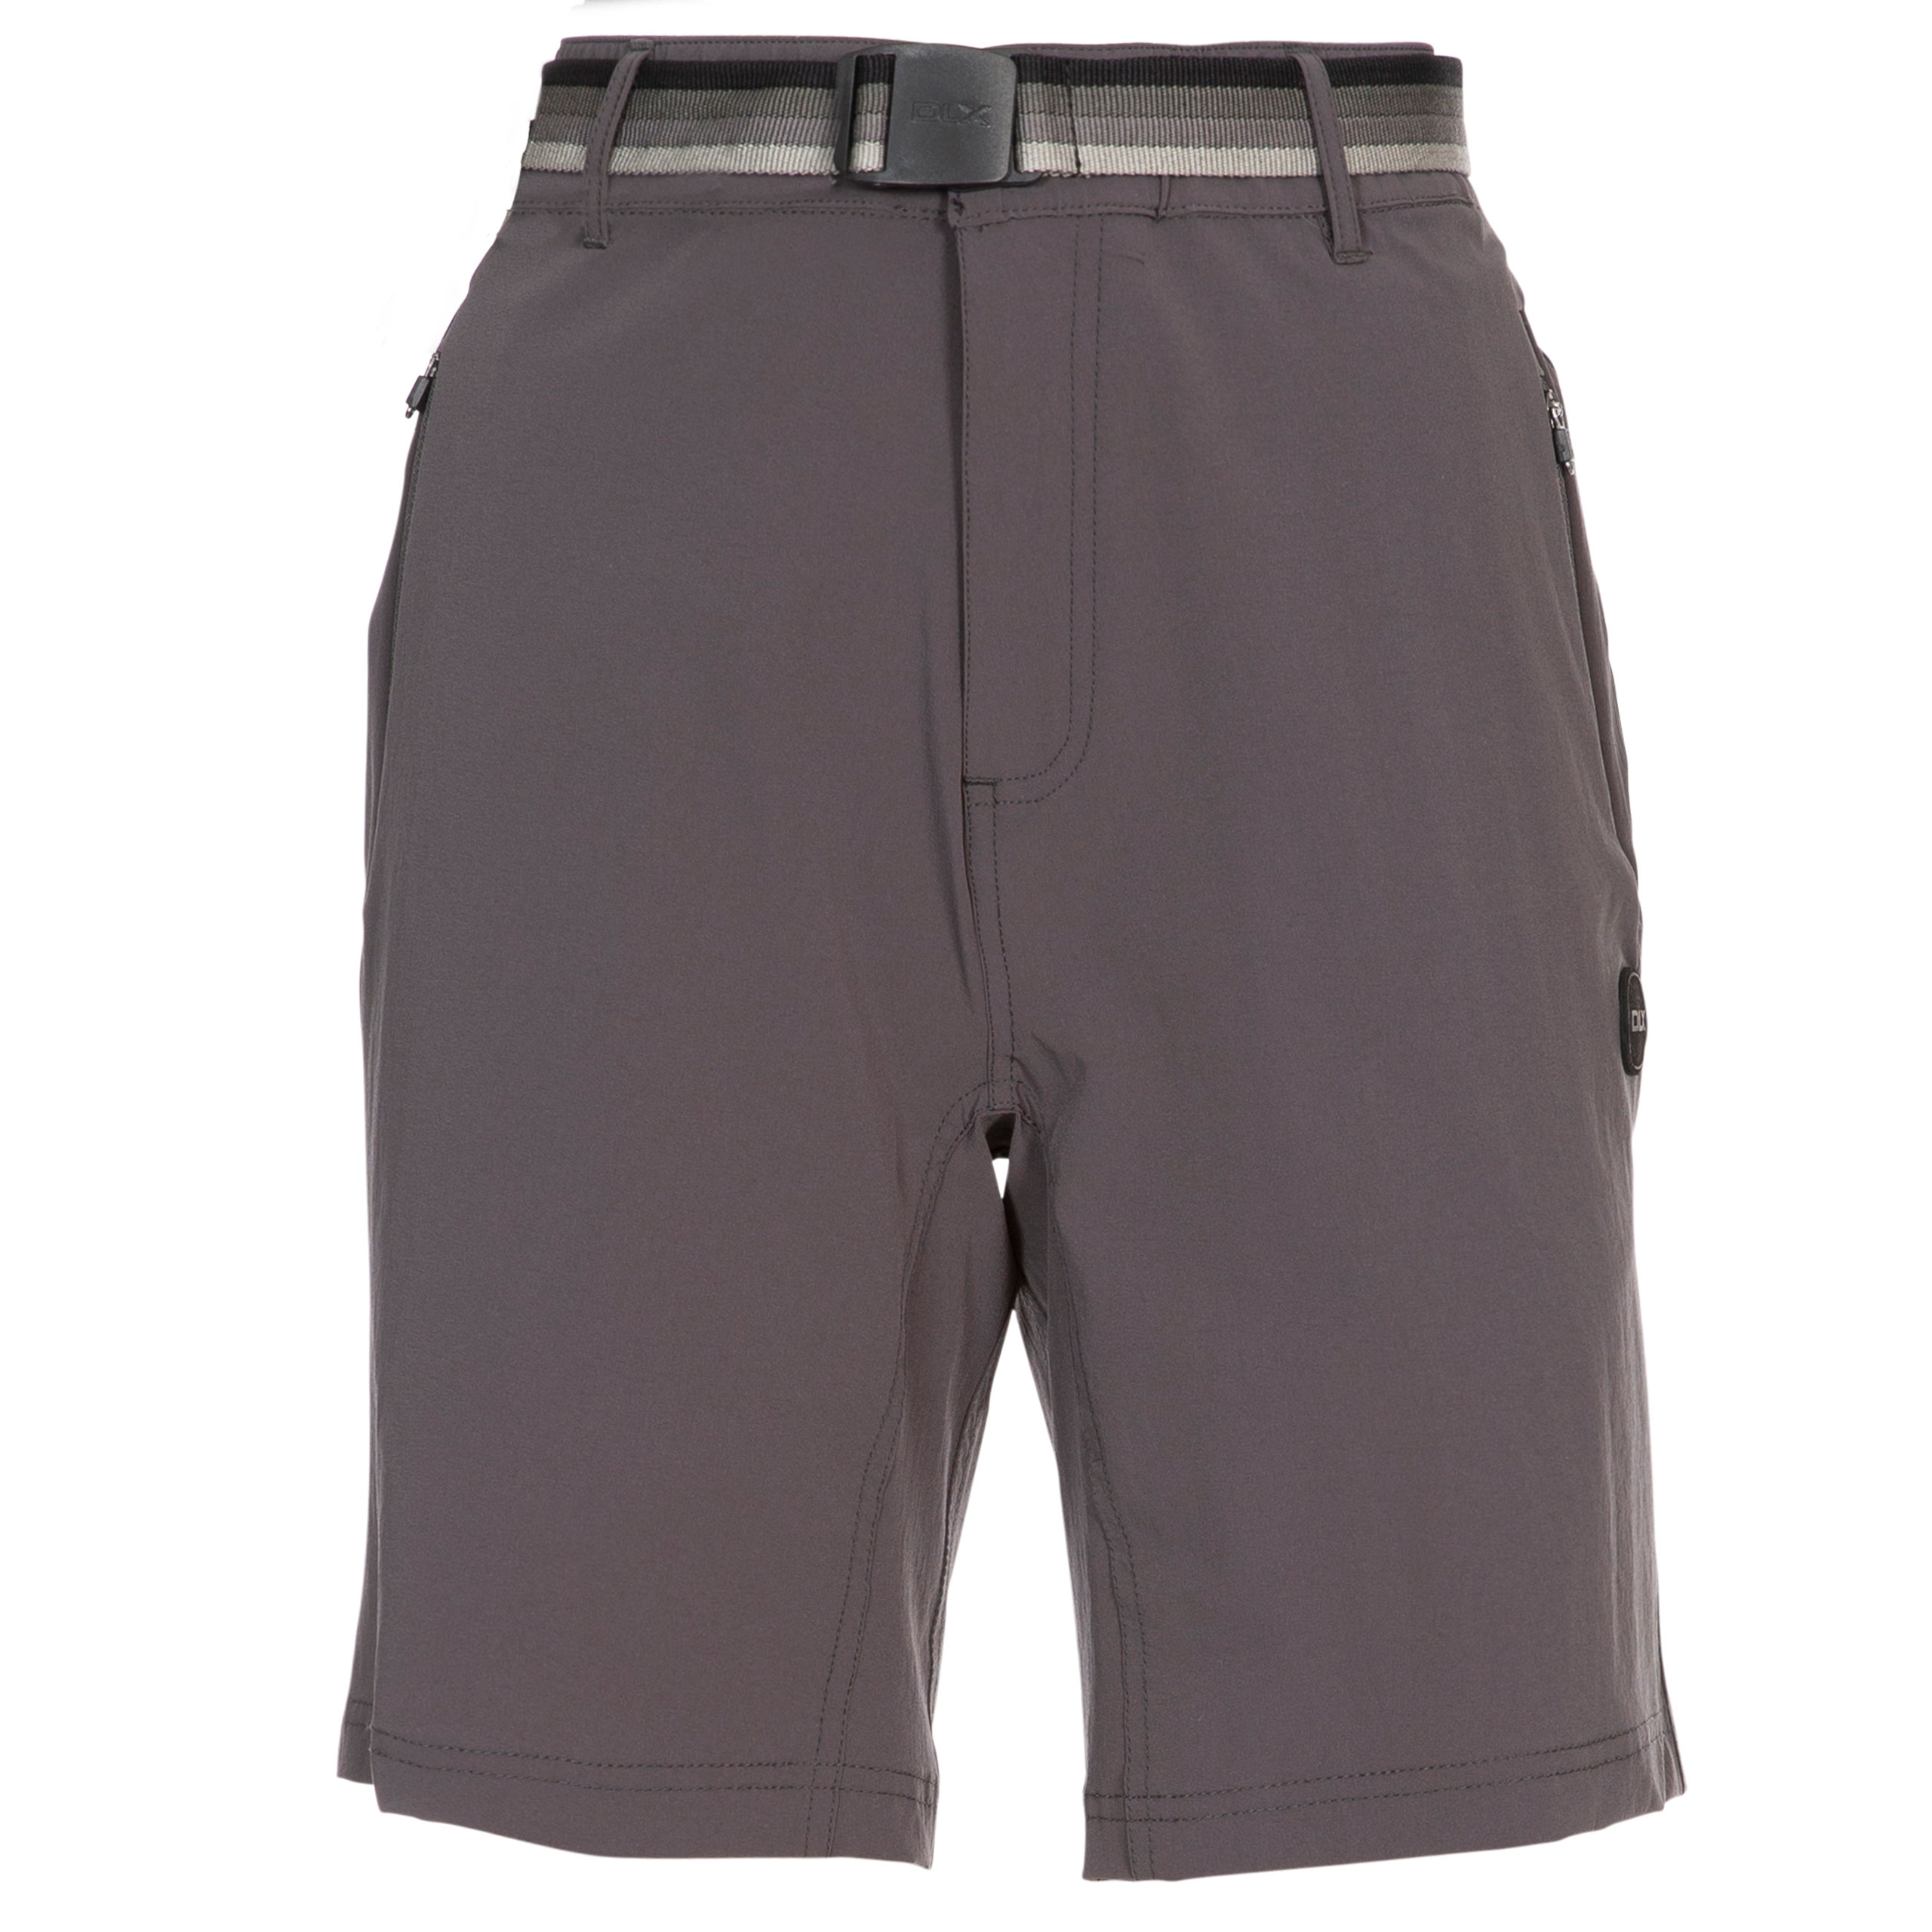 Appleton Womens Dlx Walking Shorts